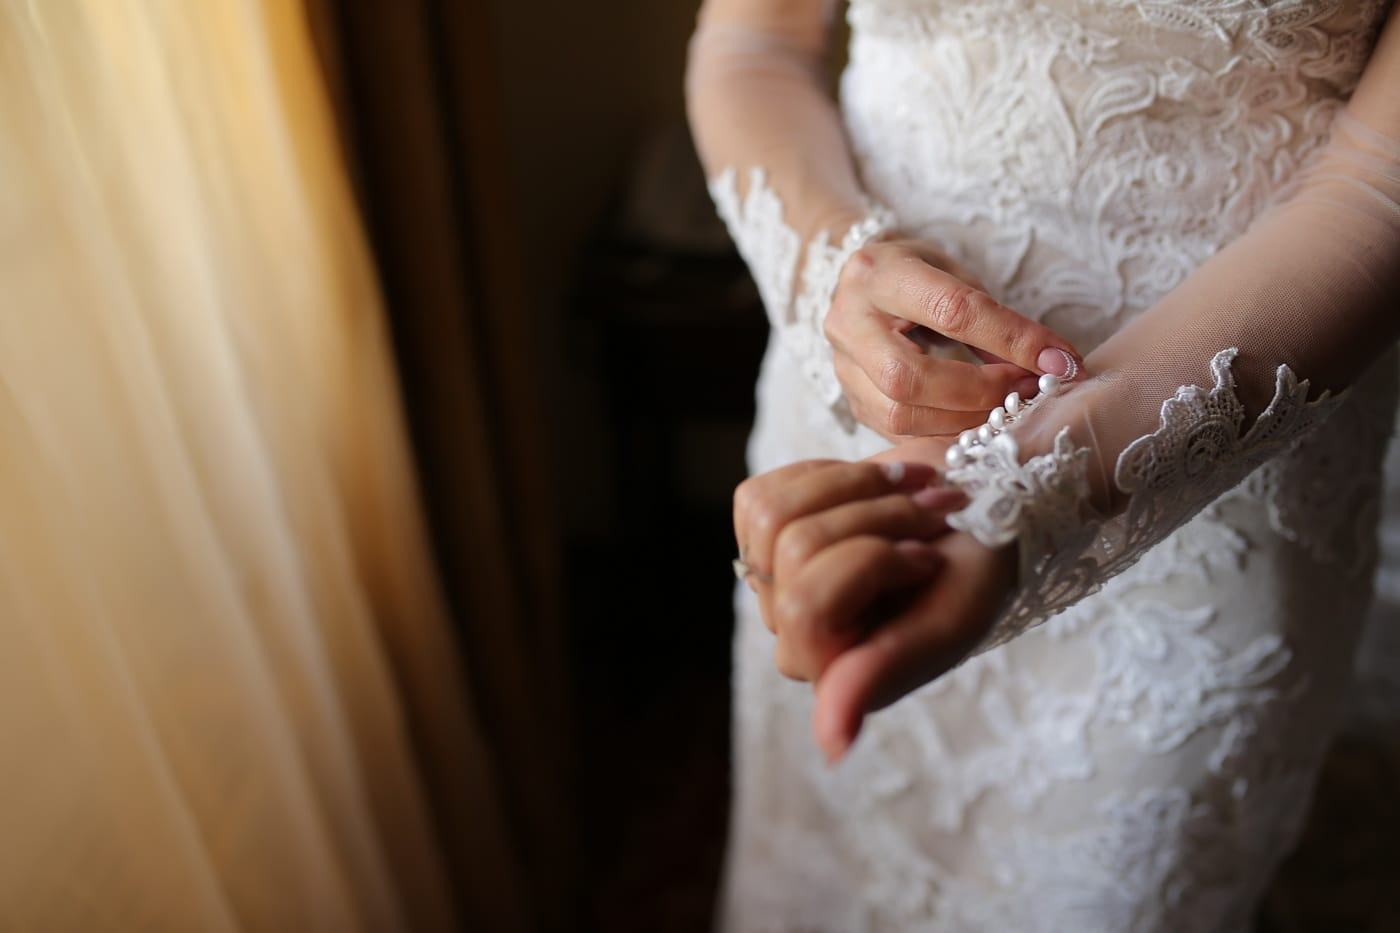 salon, wedding dress, bride, hands, fashion, groom, woman, wedding, love, engagement